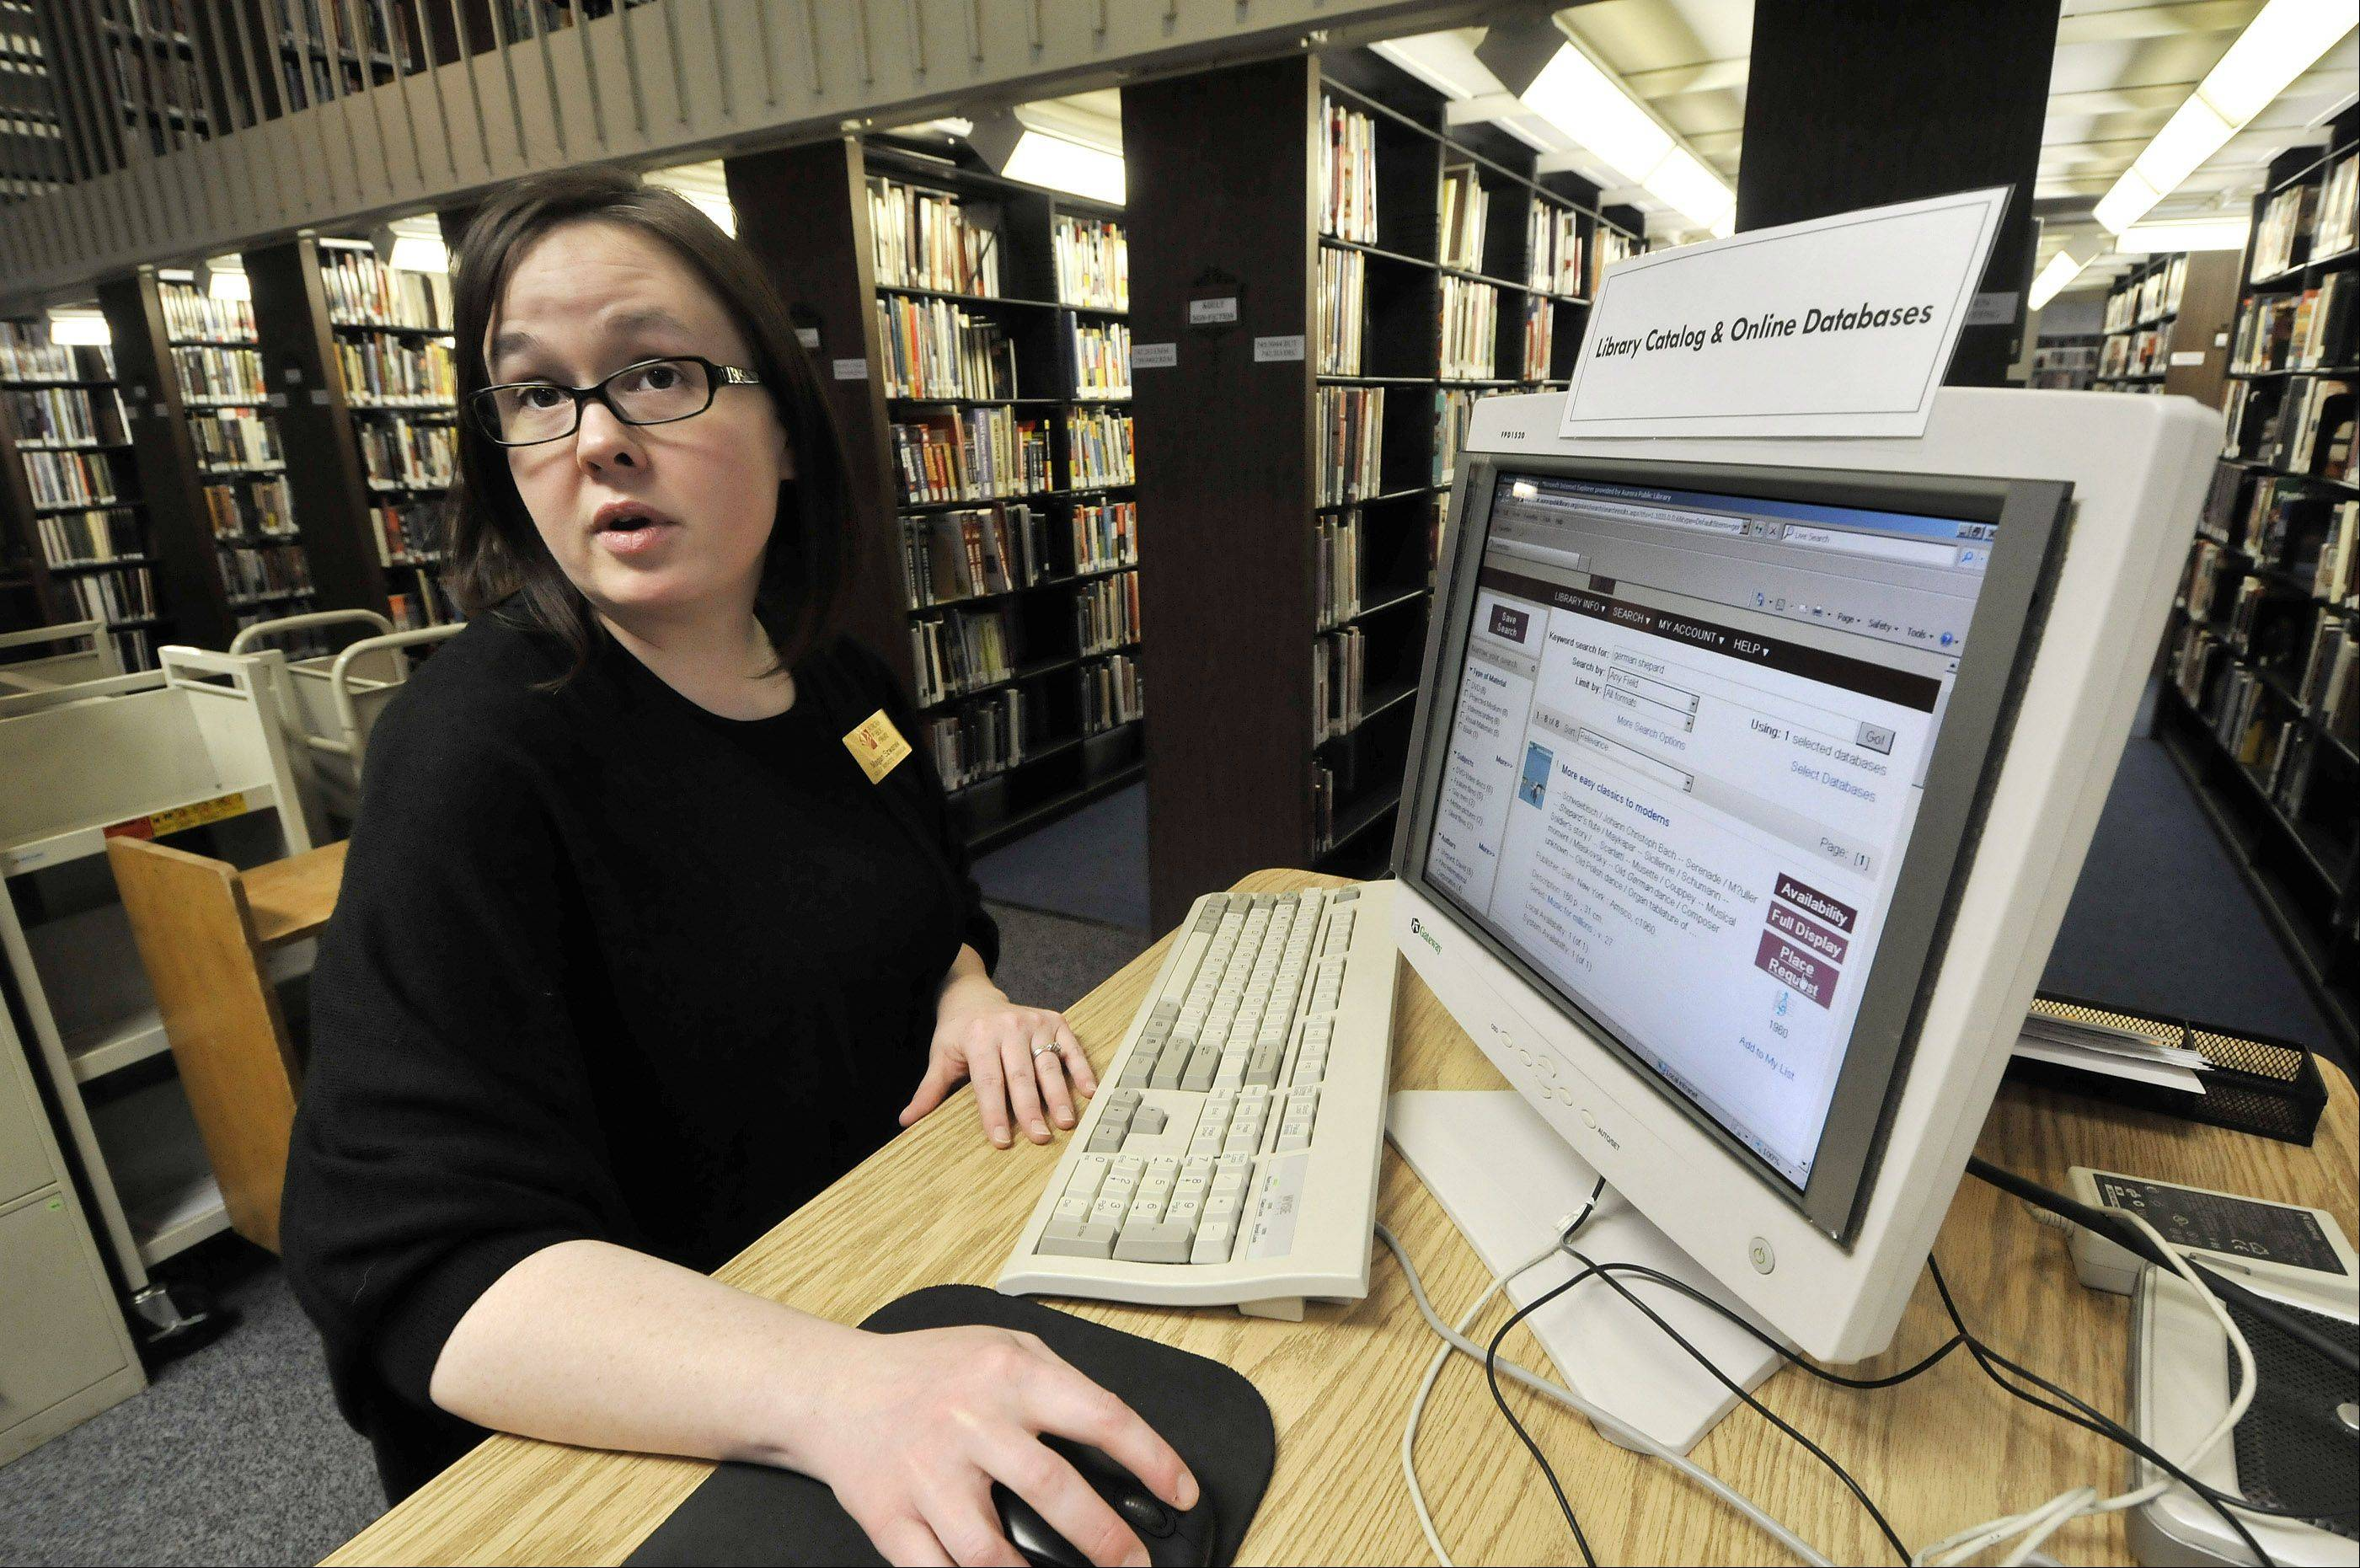 Aurora library launches new tech, prepares for groundbreaking